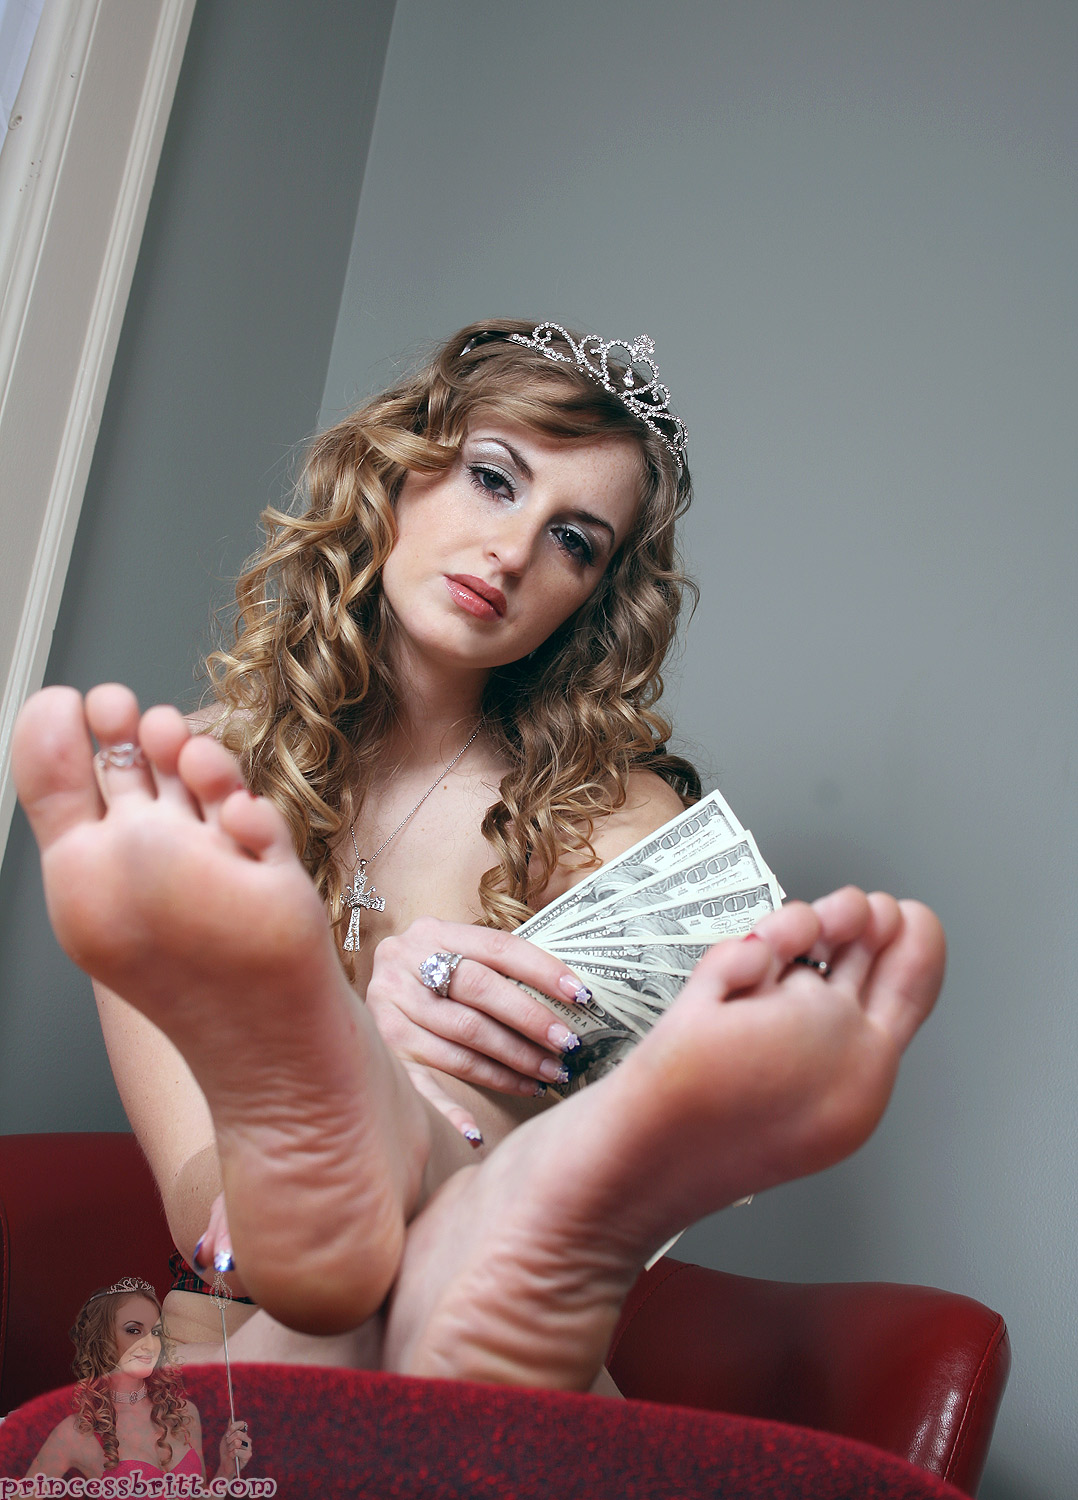 feet anna dream feet foot punkz footsietootsie foot goddess natalie